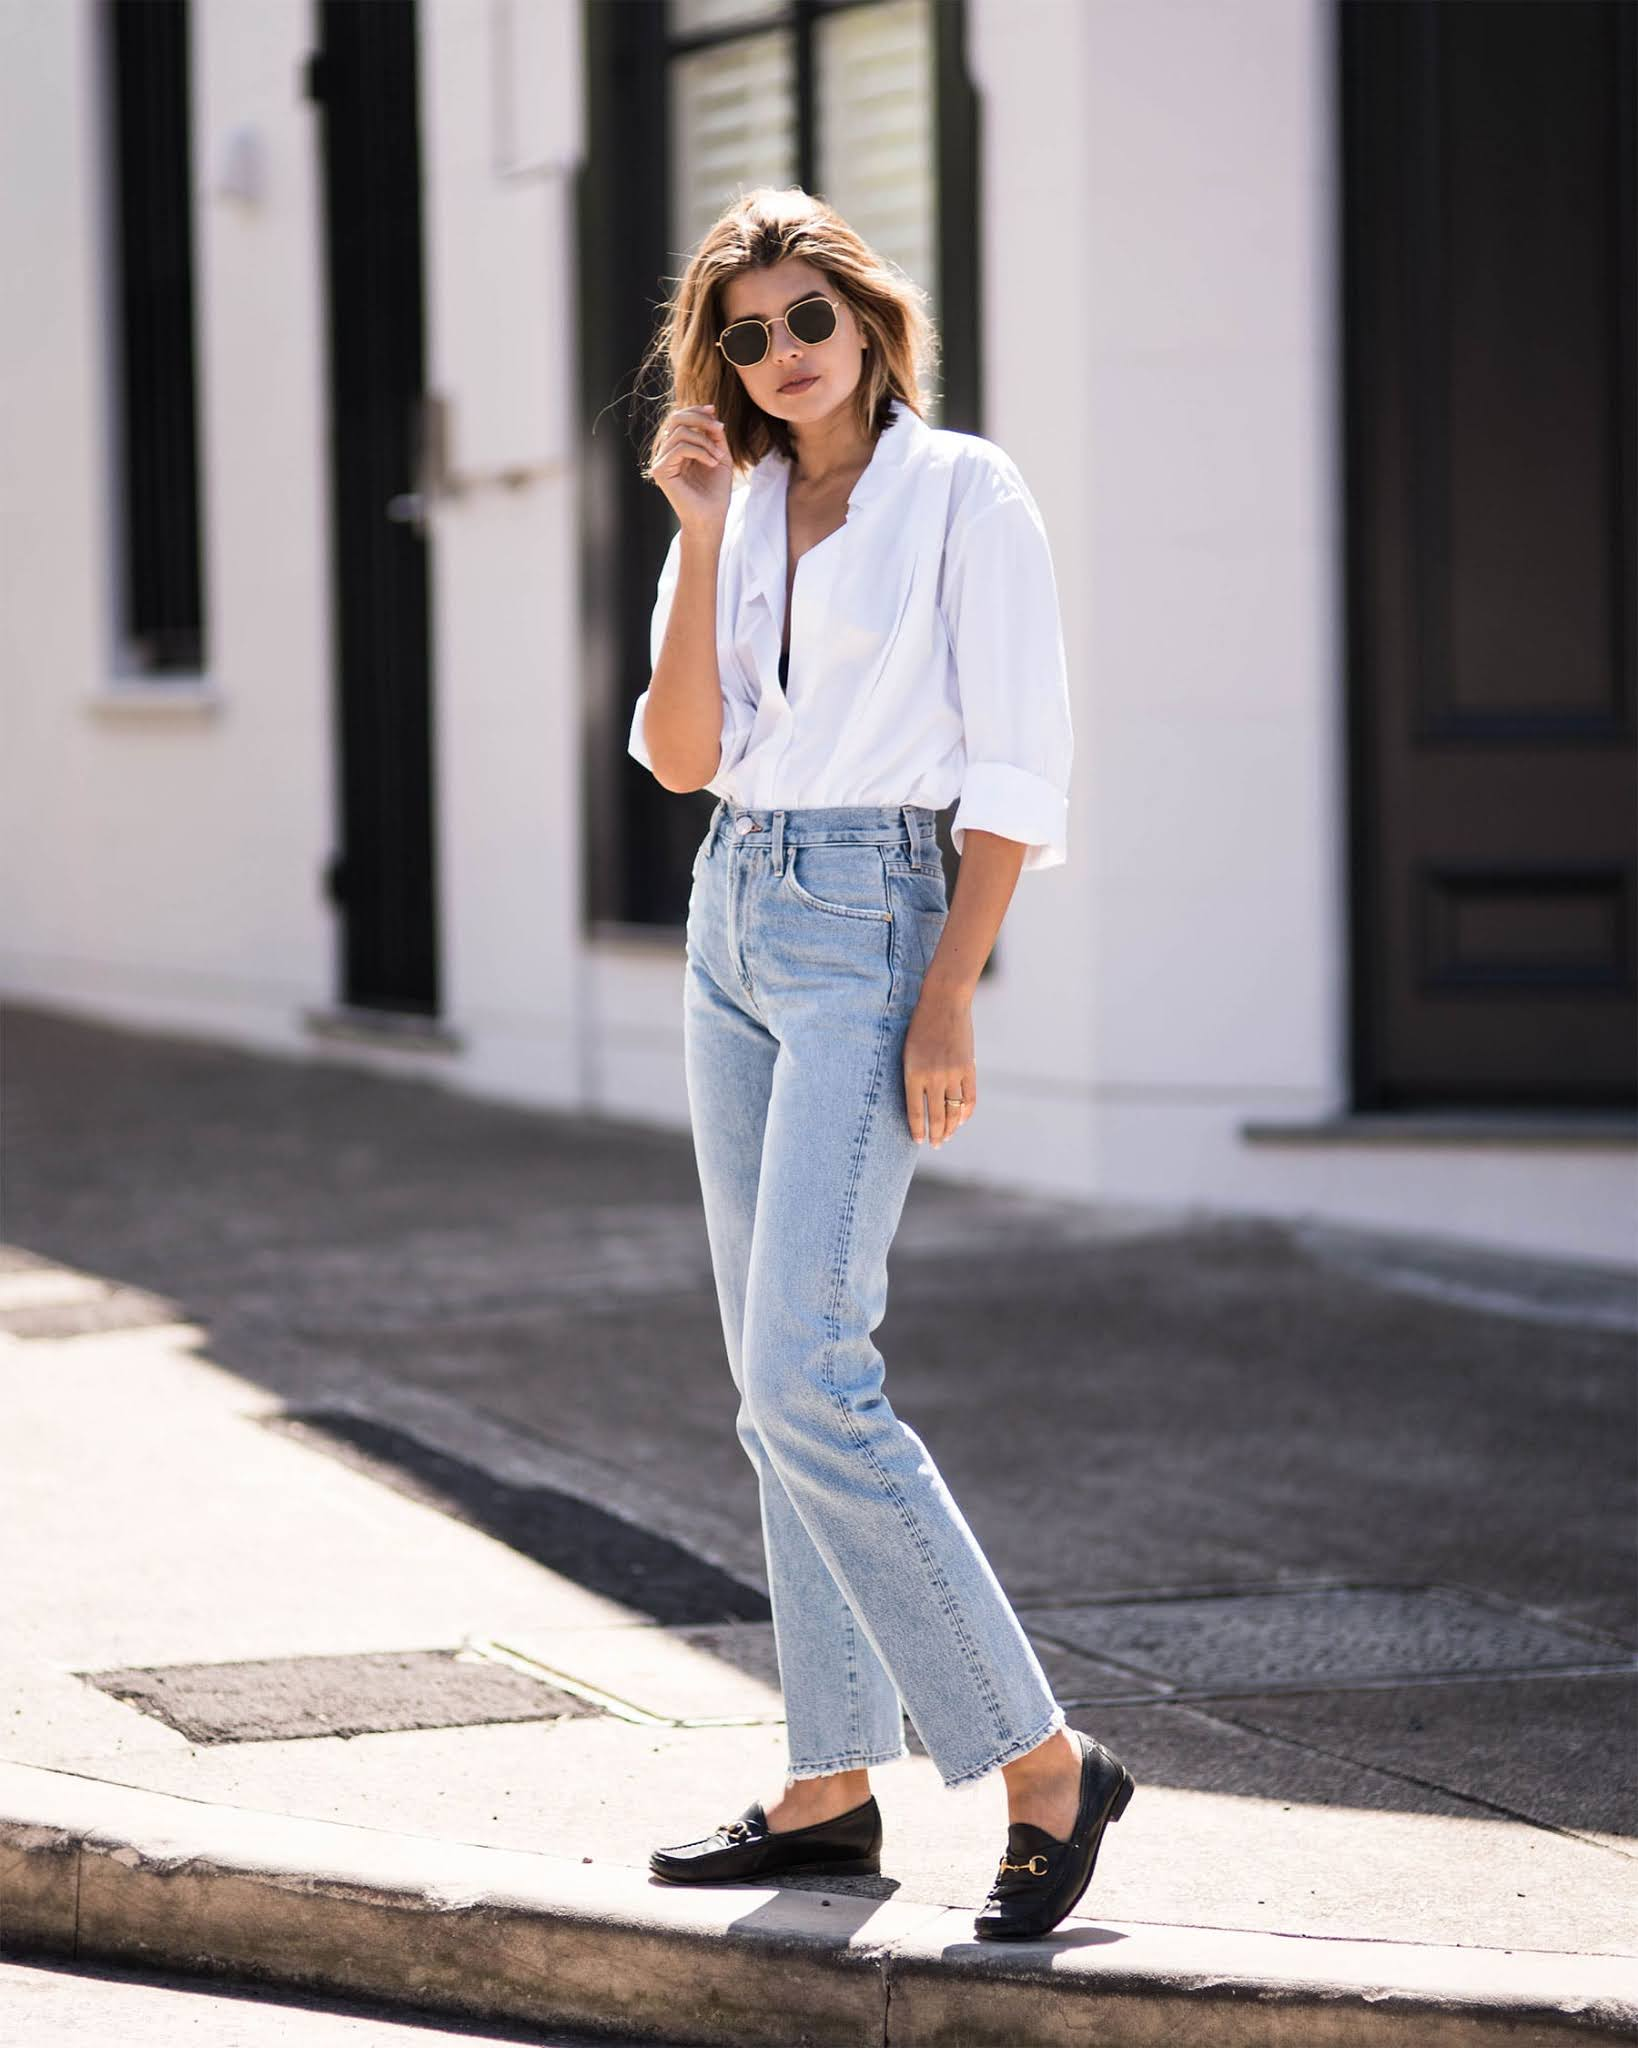 Under-$100 Casual Spring Outfit Idea — Tailsa Sutton in round sunglasses with metal frames, a crisp white button-down shirt, classic straight-leg jeans, and black loafers